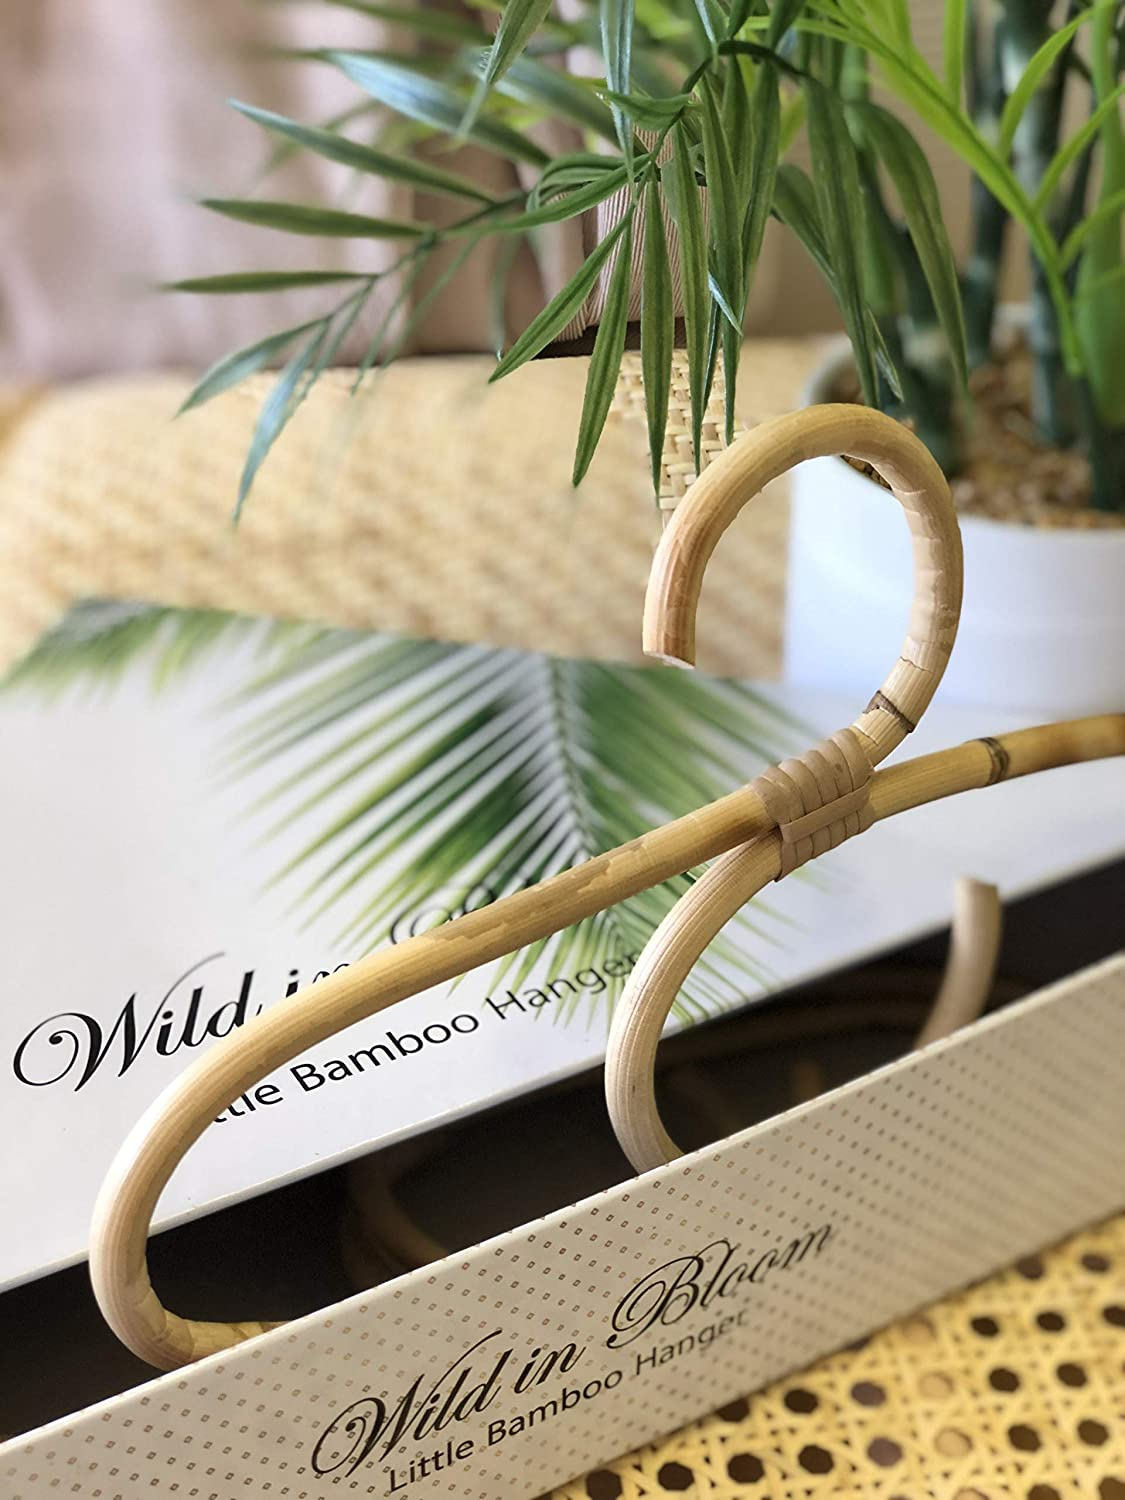 Little Bamboo Hanger, Childrens'; Baby, Bamboo, Rattan, Wooden Hangar or Coat Hanger Gift Set. Perfect as a Baby Shower Gift or for Infant, Toddler and Children's Nursery Decor